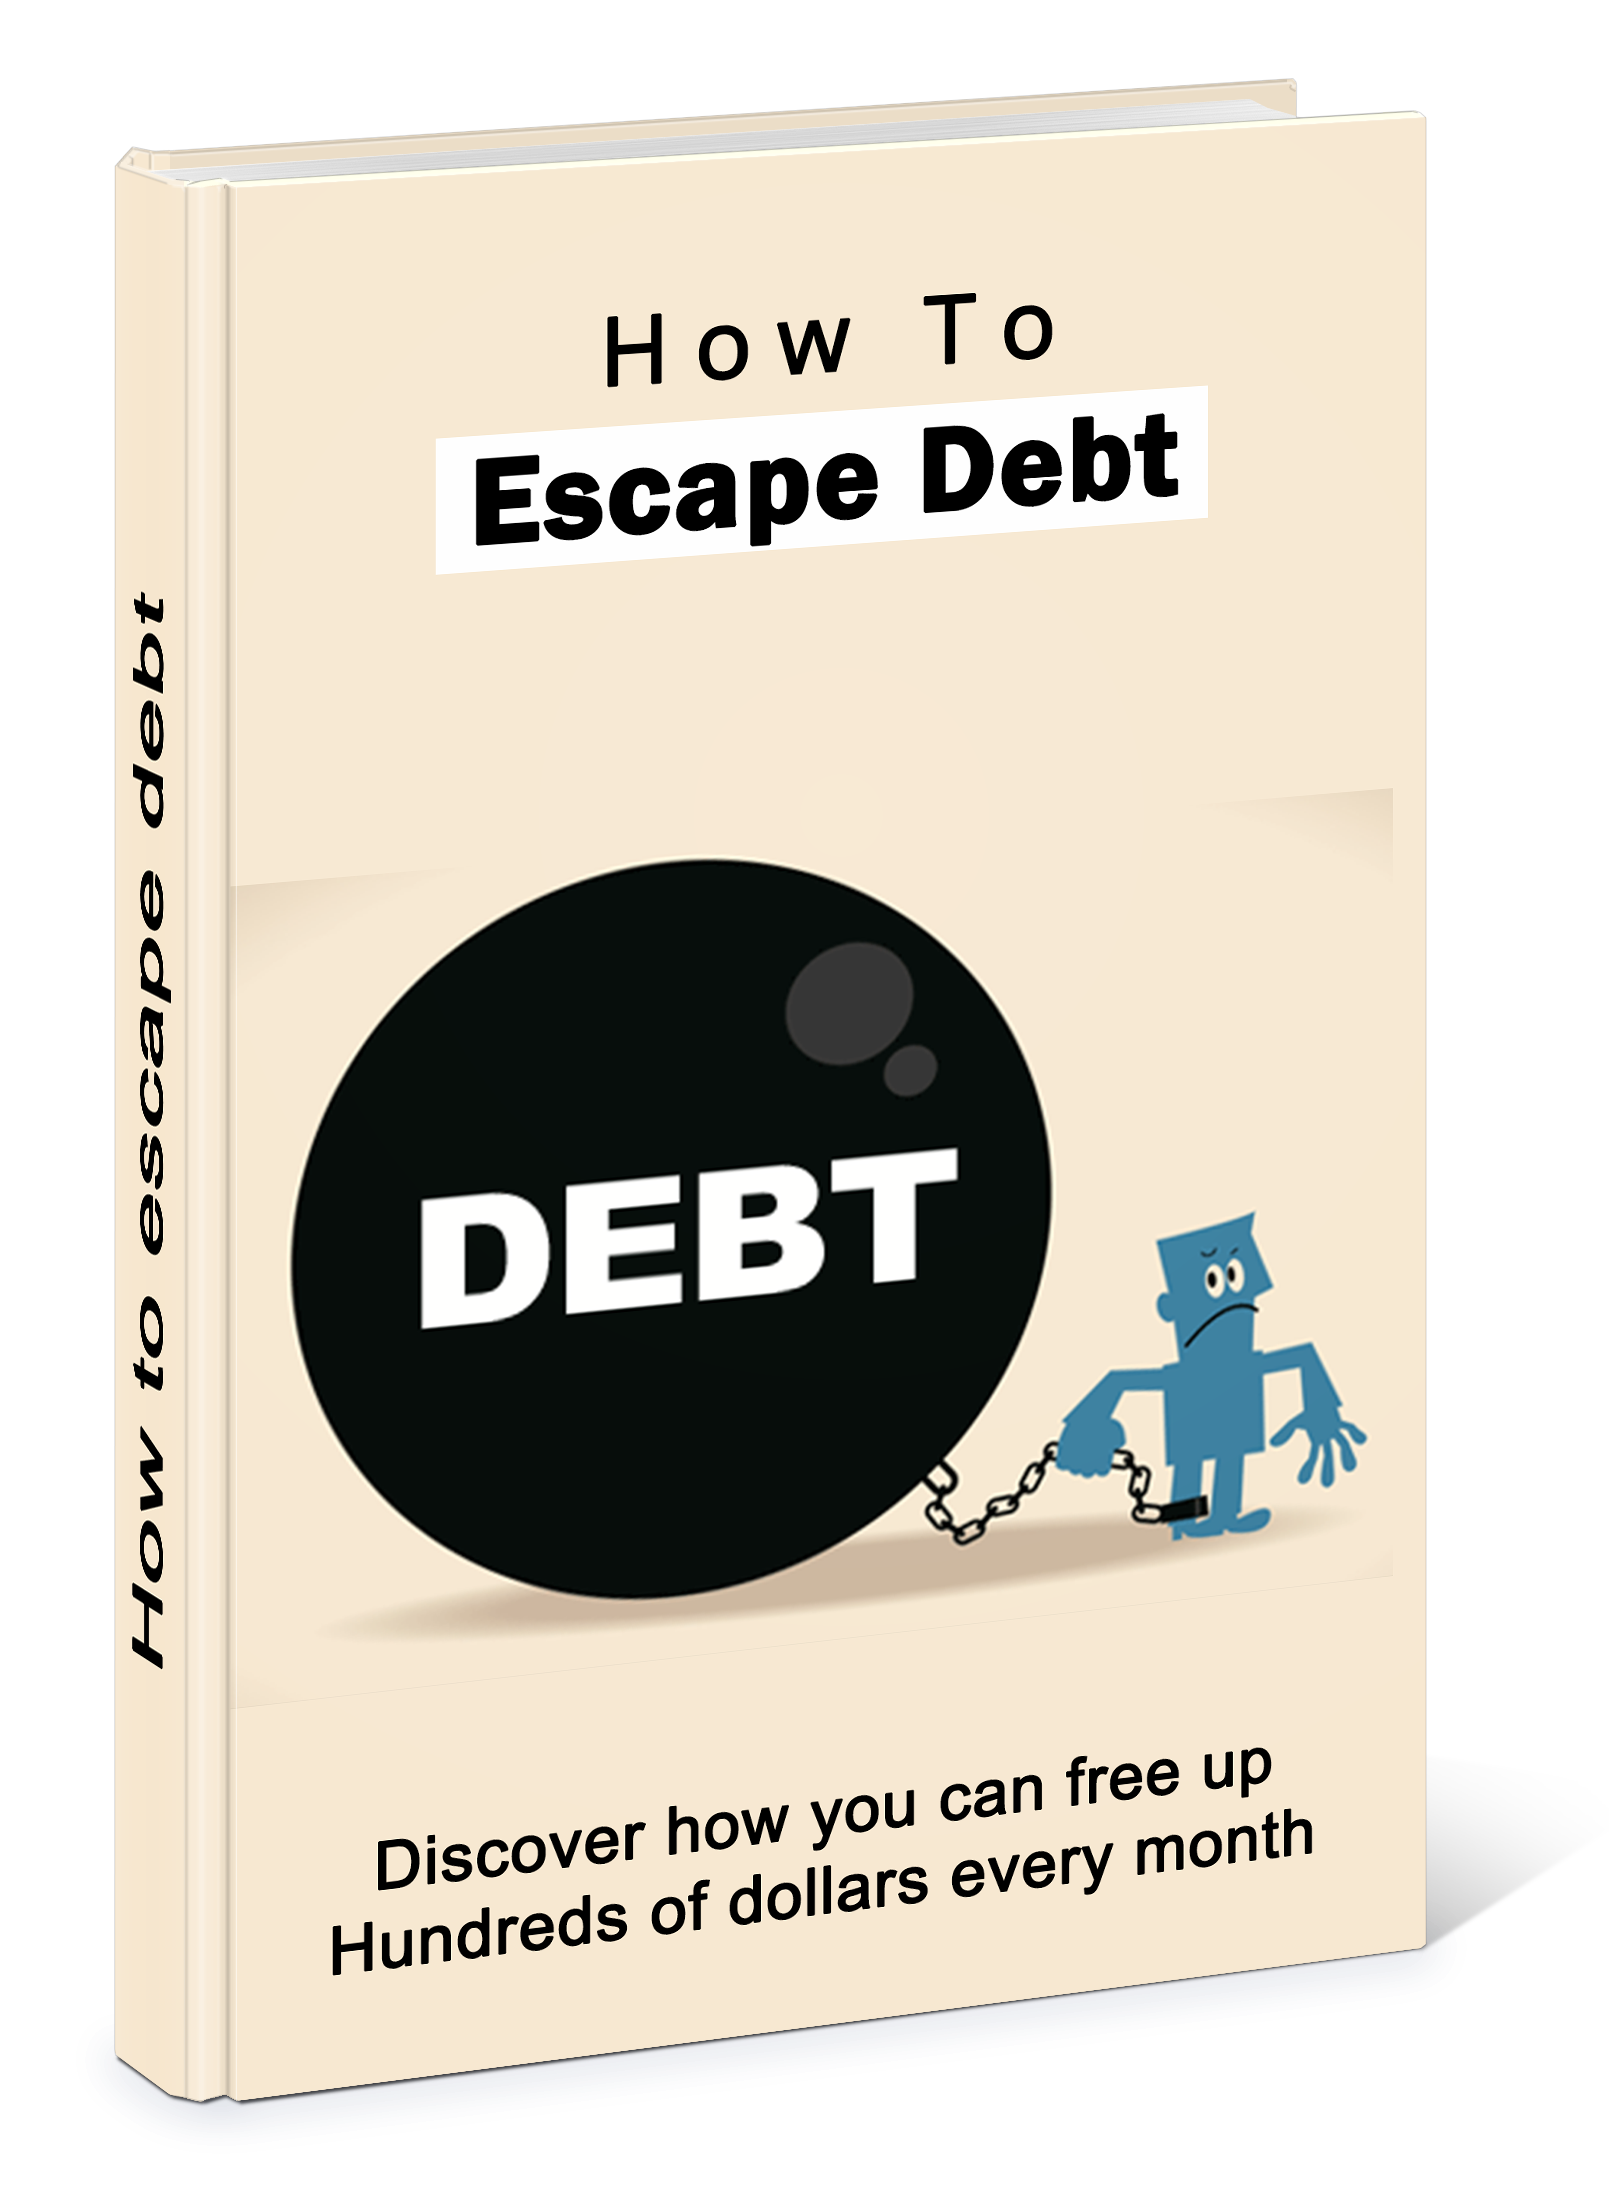 How-to-escape-debt.png